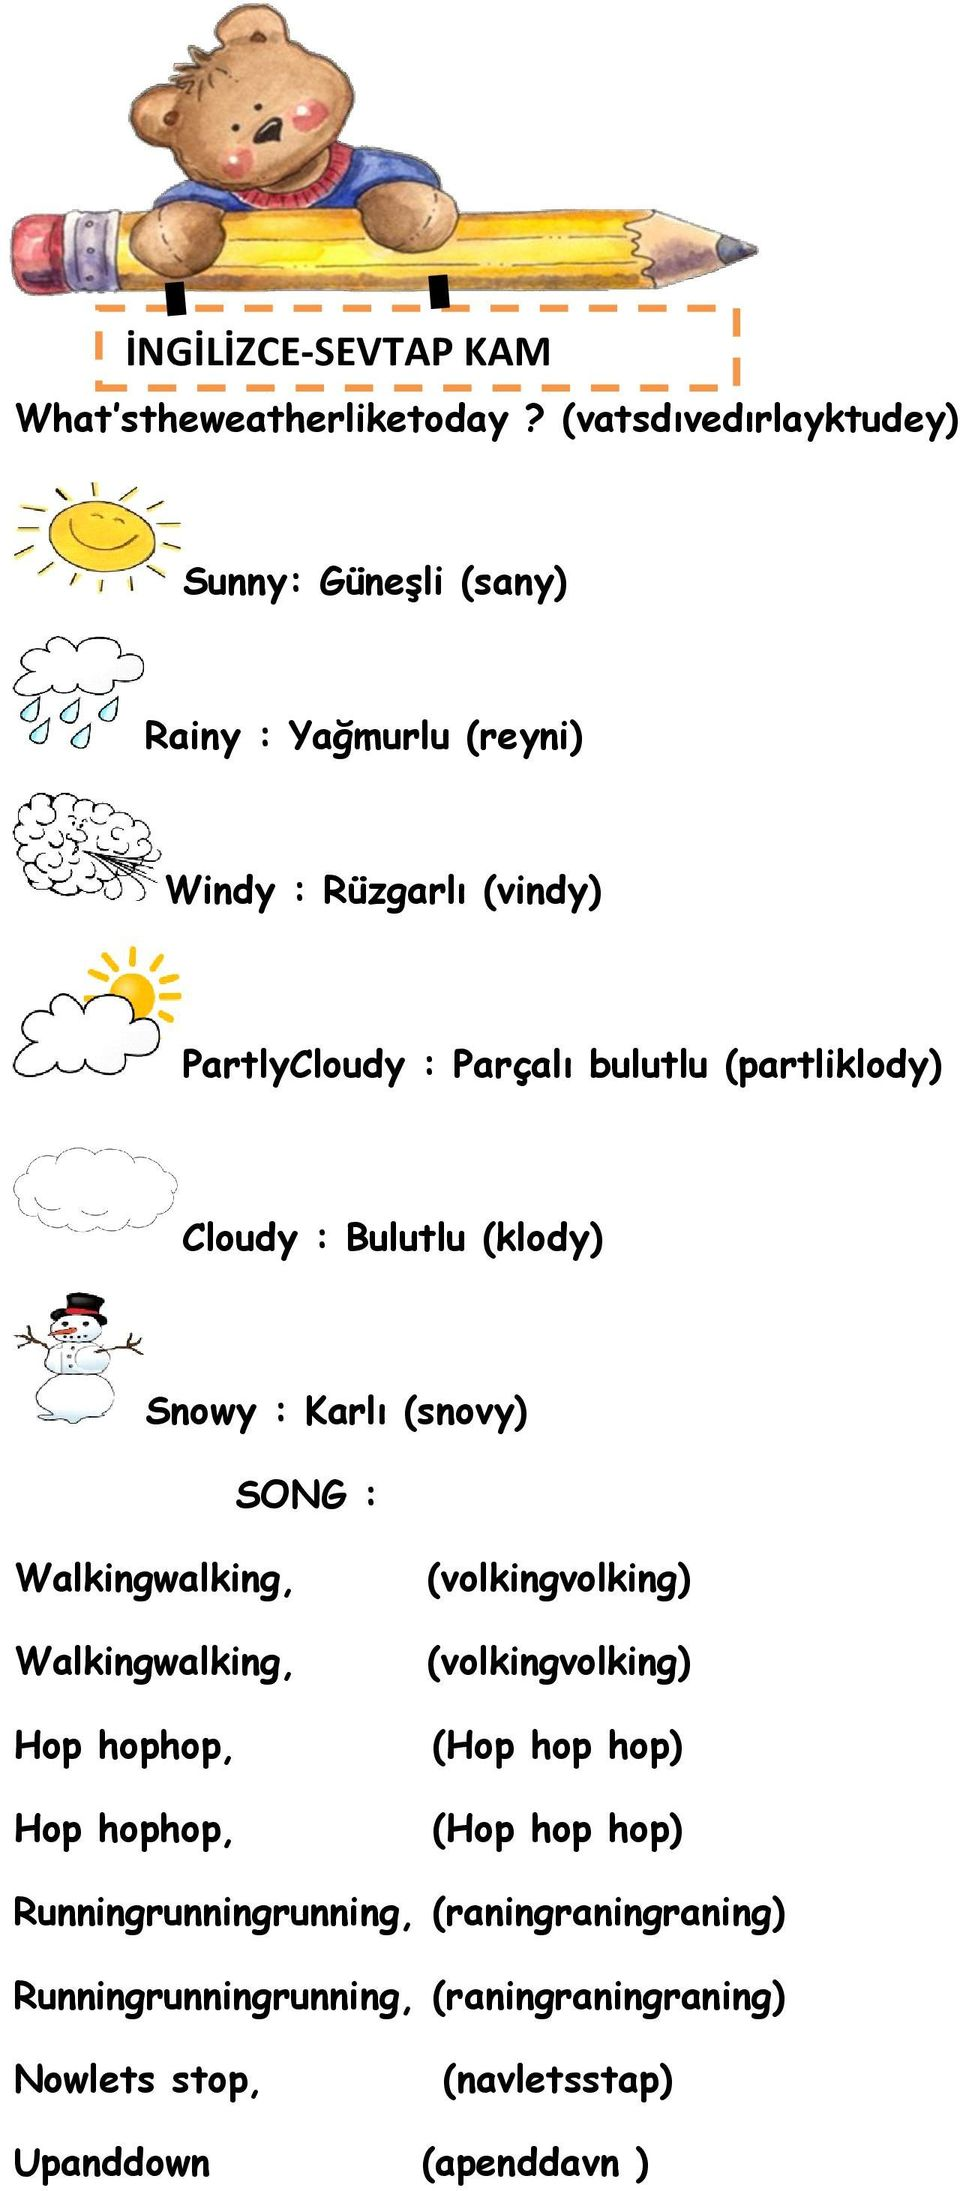 bulutlu (partliklody) Cloudy : Bulutlu (klody) Snowy : Karlı (snovy) SONG : Walkingwalking, Walkingwalking, Hop hophop, Hop